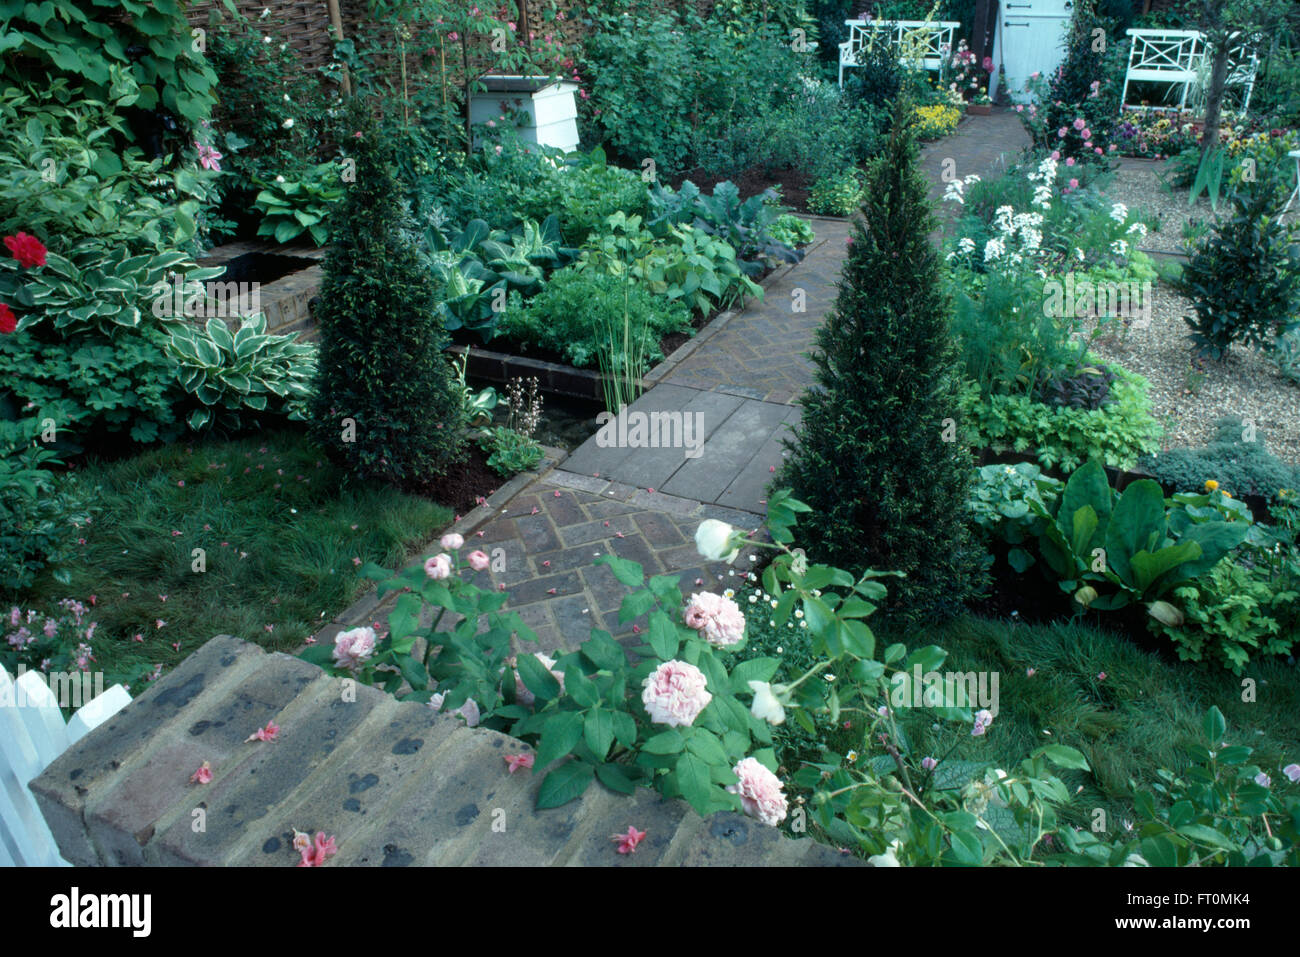 Pink Roses And Pyramid Box In A Formal Potager Garden With Brick Paths White Bee Hive